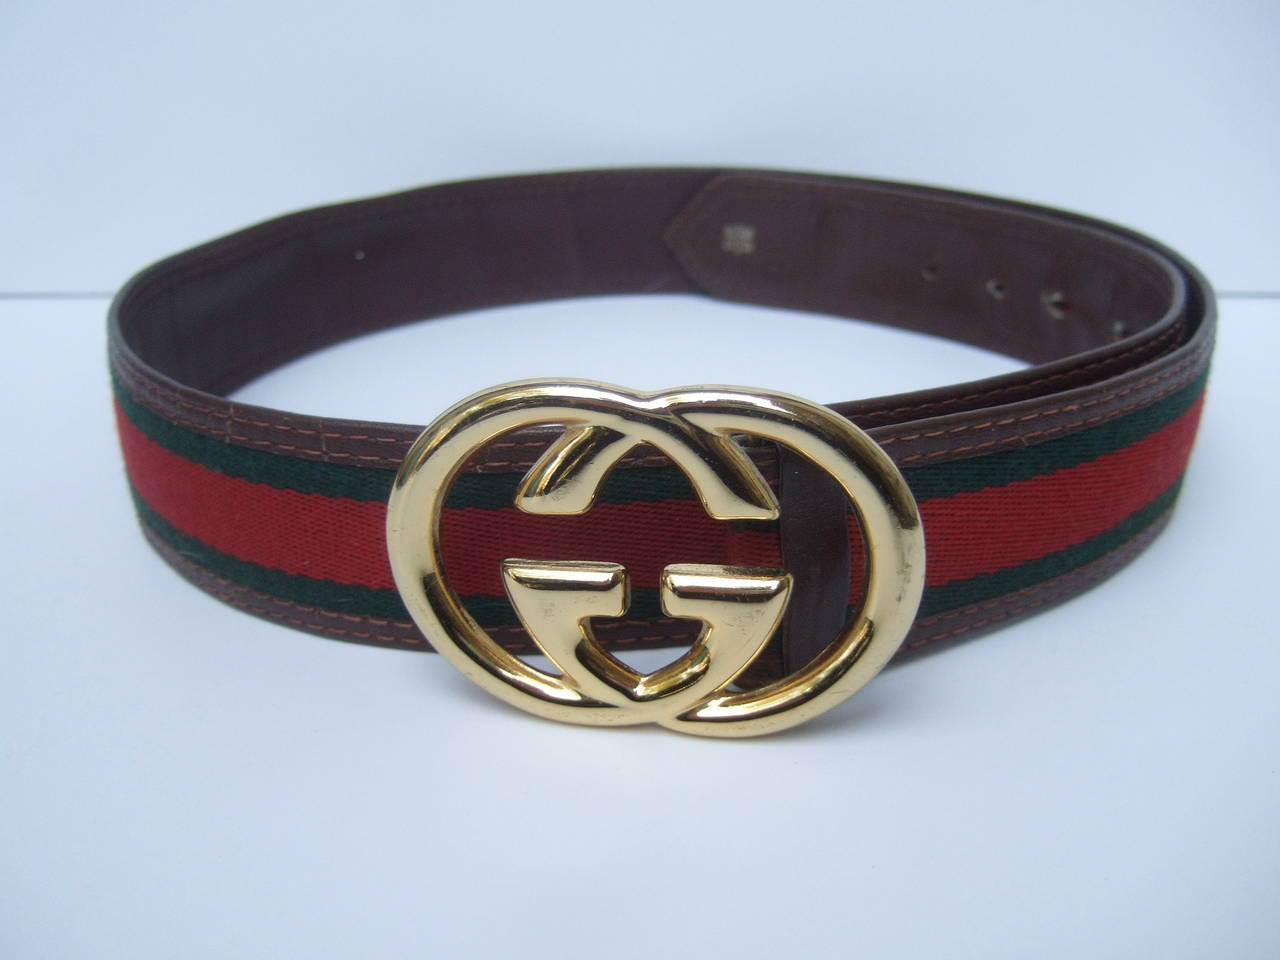 ad0a35ced Gucci Sleek Gilt Buckle Red & Green Striped Belt c 1980s In Excellent  Condition For Sale